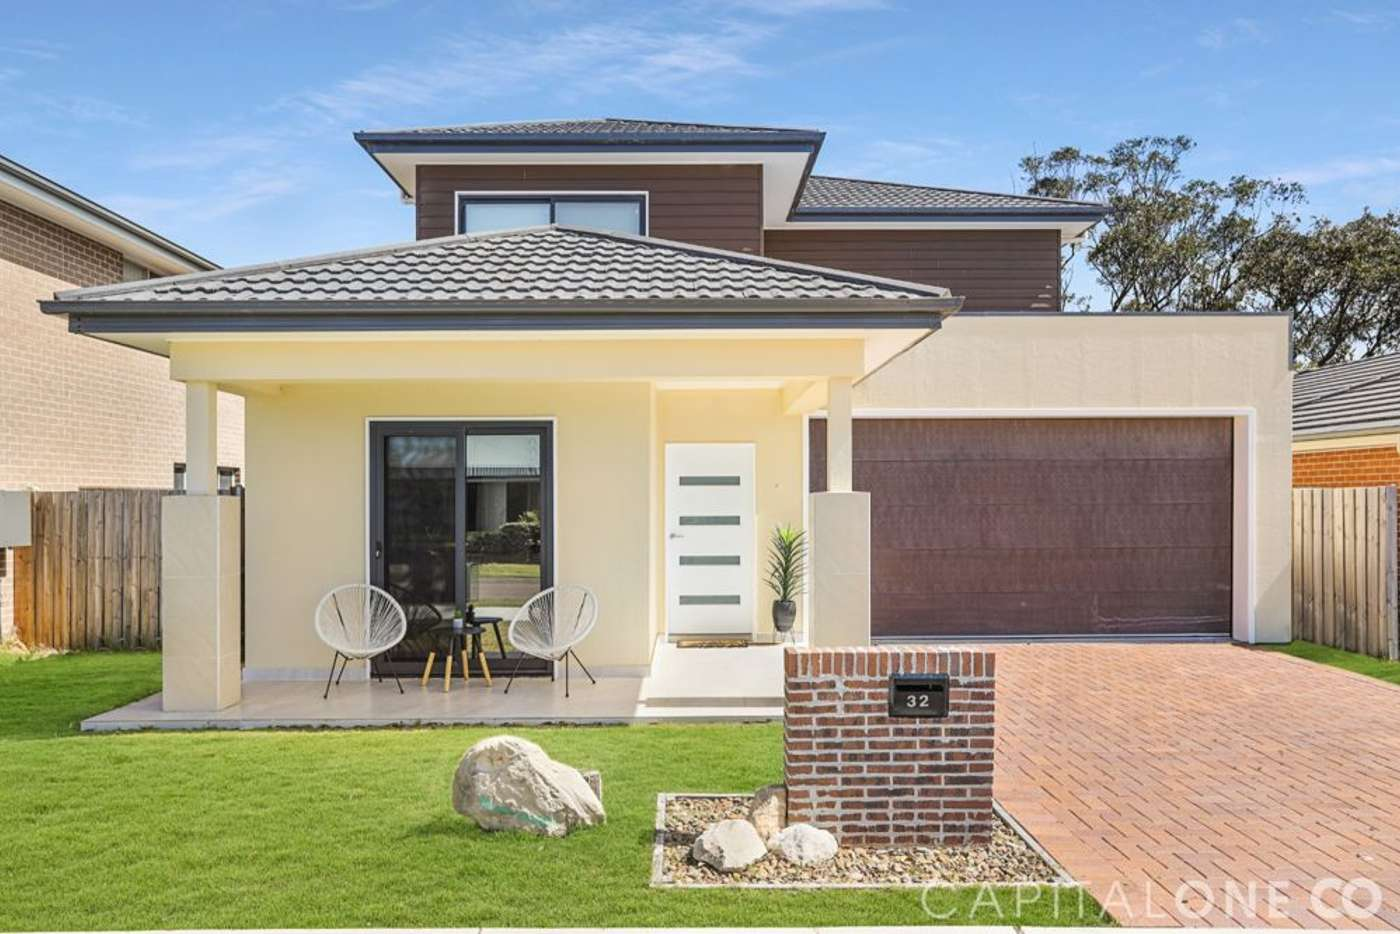 Main view of Homely house listing, 32 Parry Parade, Wyong NSW 2259